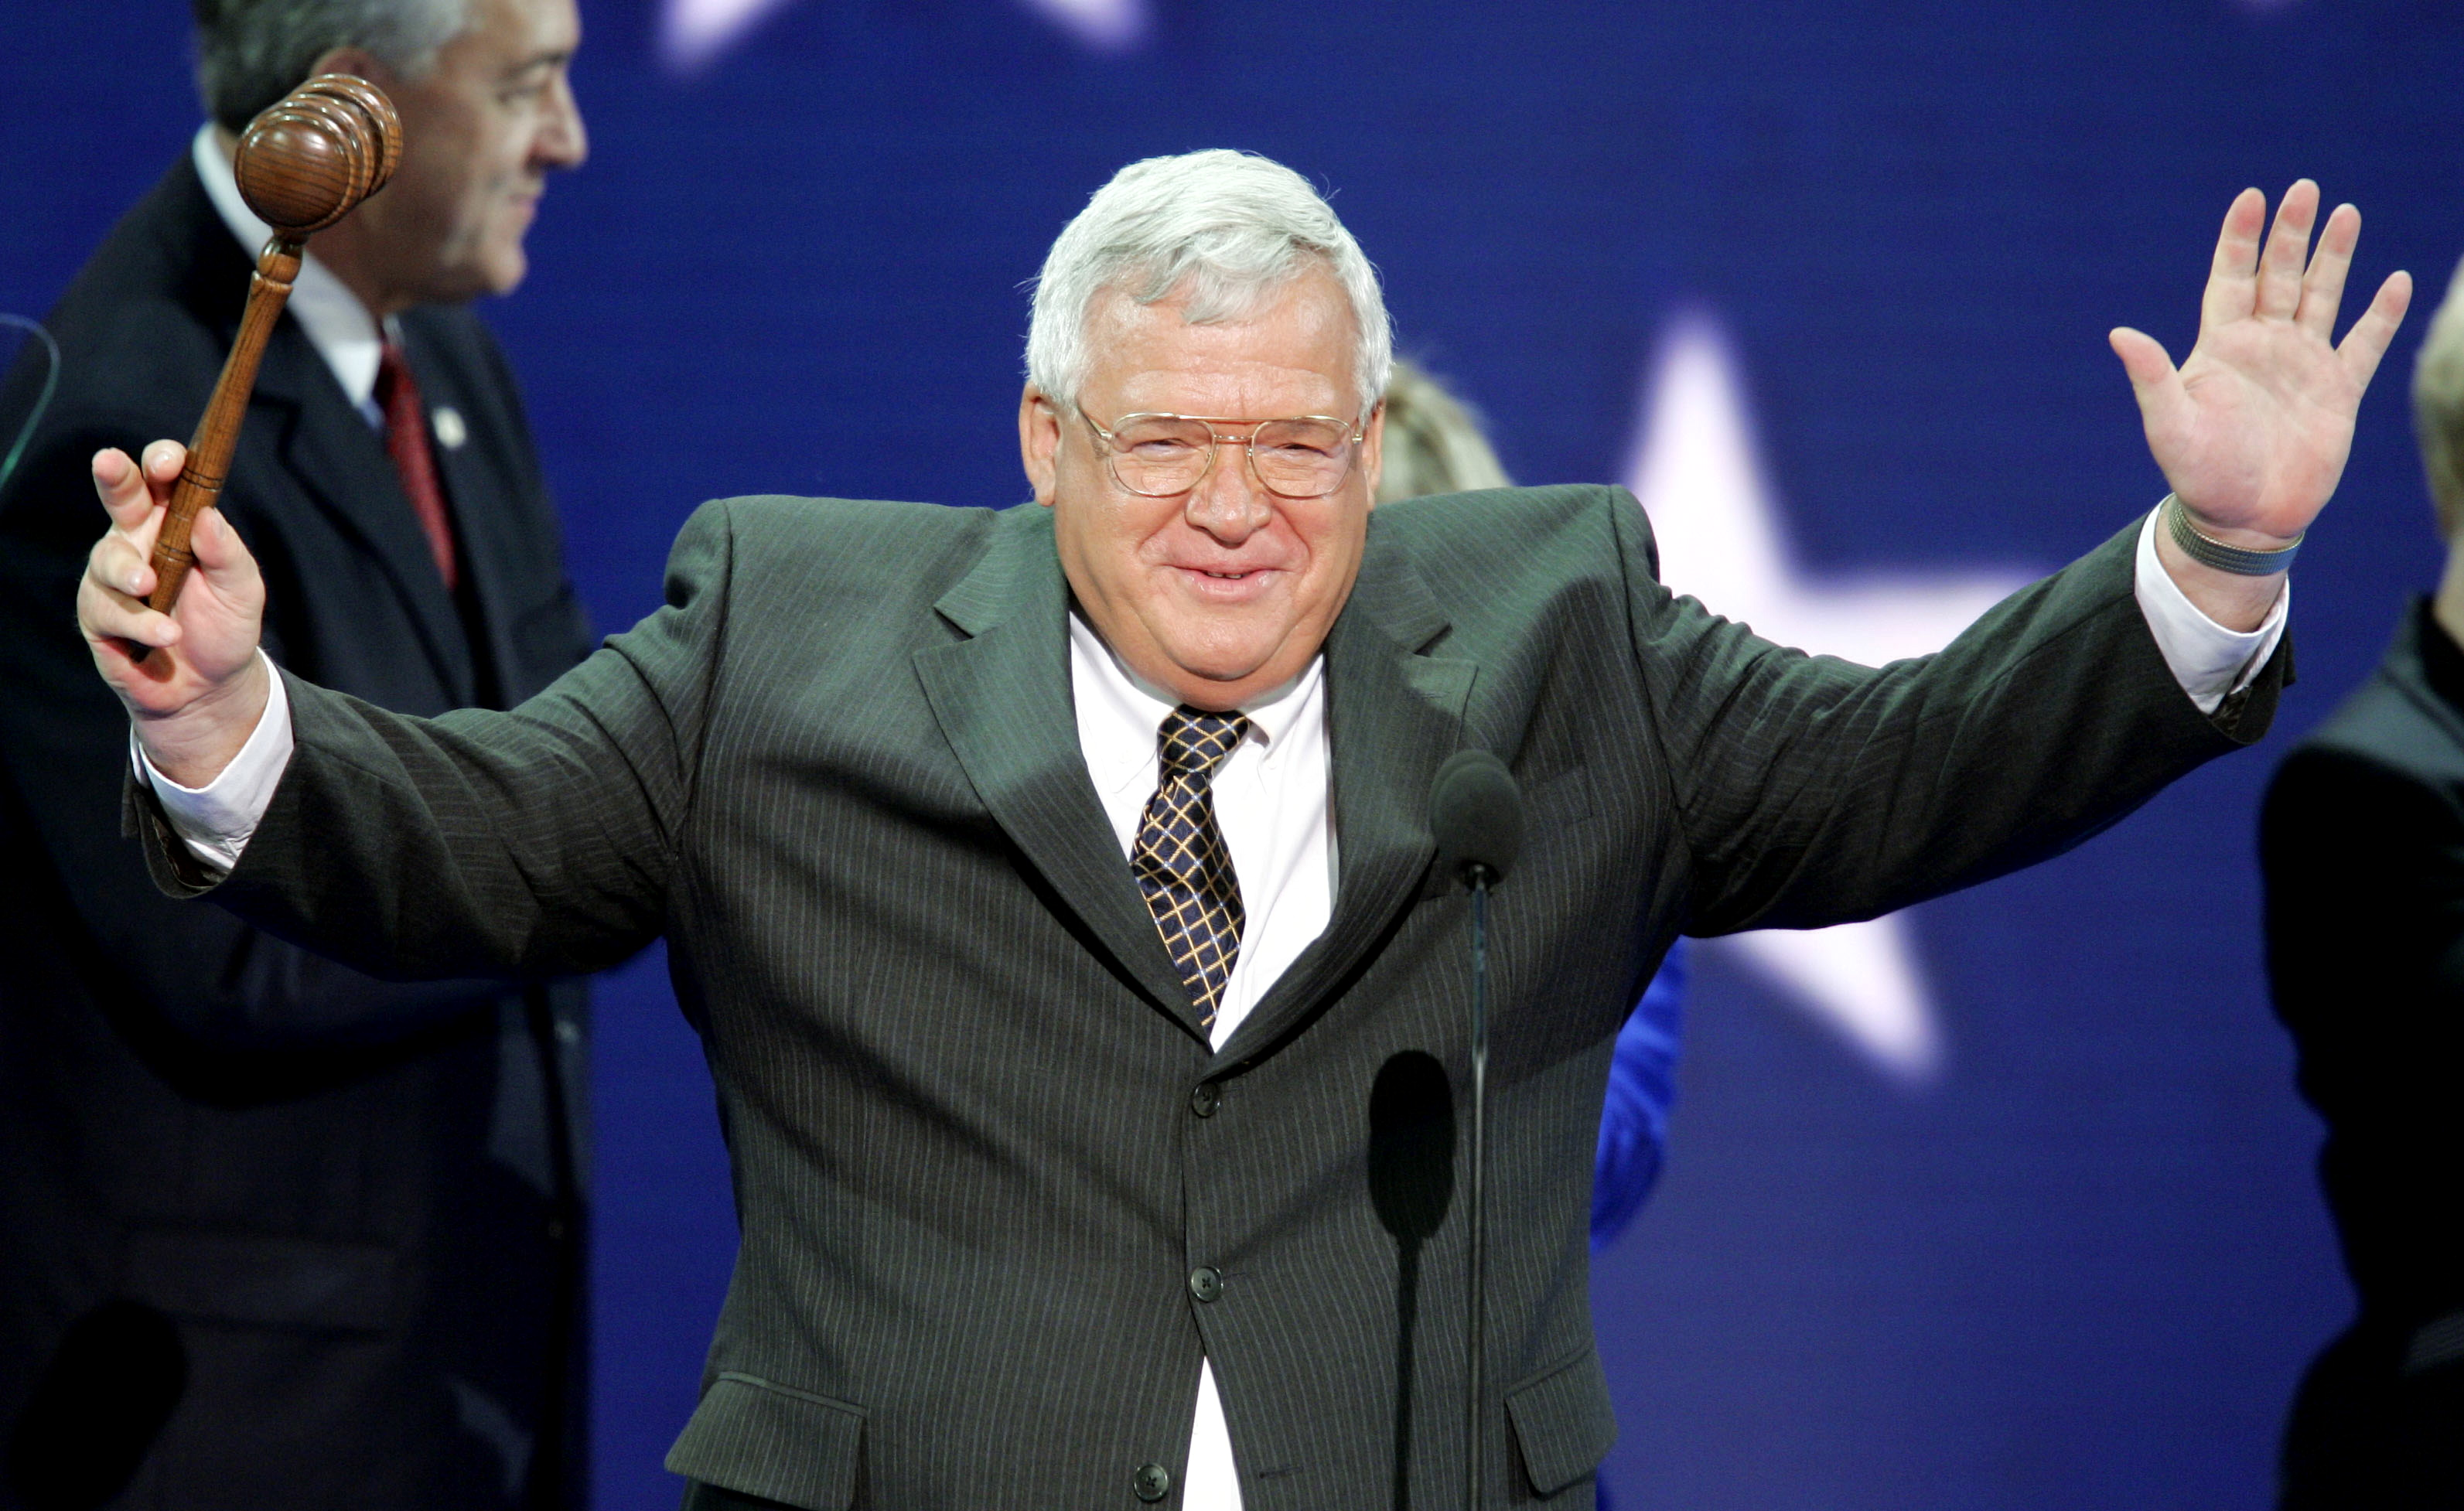 Former Speaker of the U.S. House of Representatives Dennis Hastert, from Illinois, greets delegates during the opening session of the 2004 Republican National Convention at Madison Square Garden in New York, August 30, 2004. Photo courtesy of Reuters